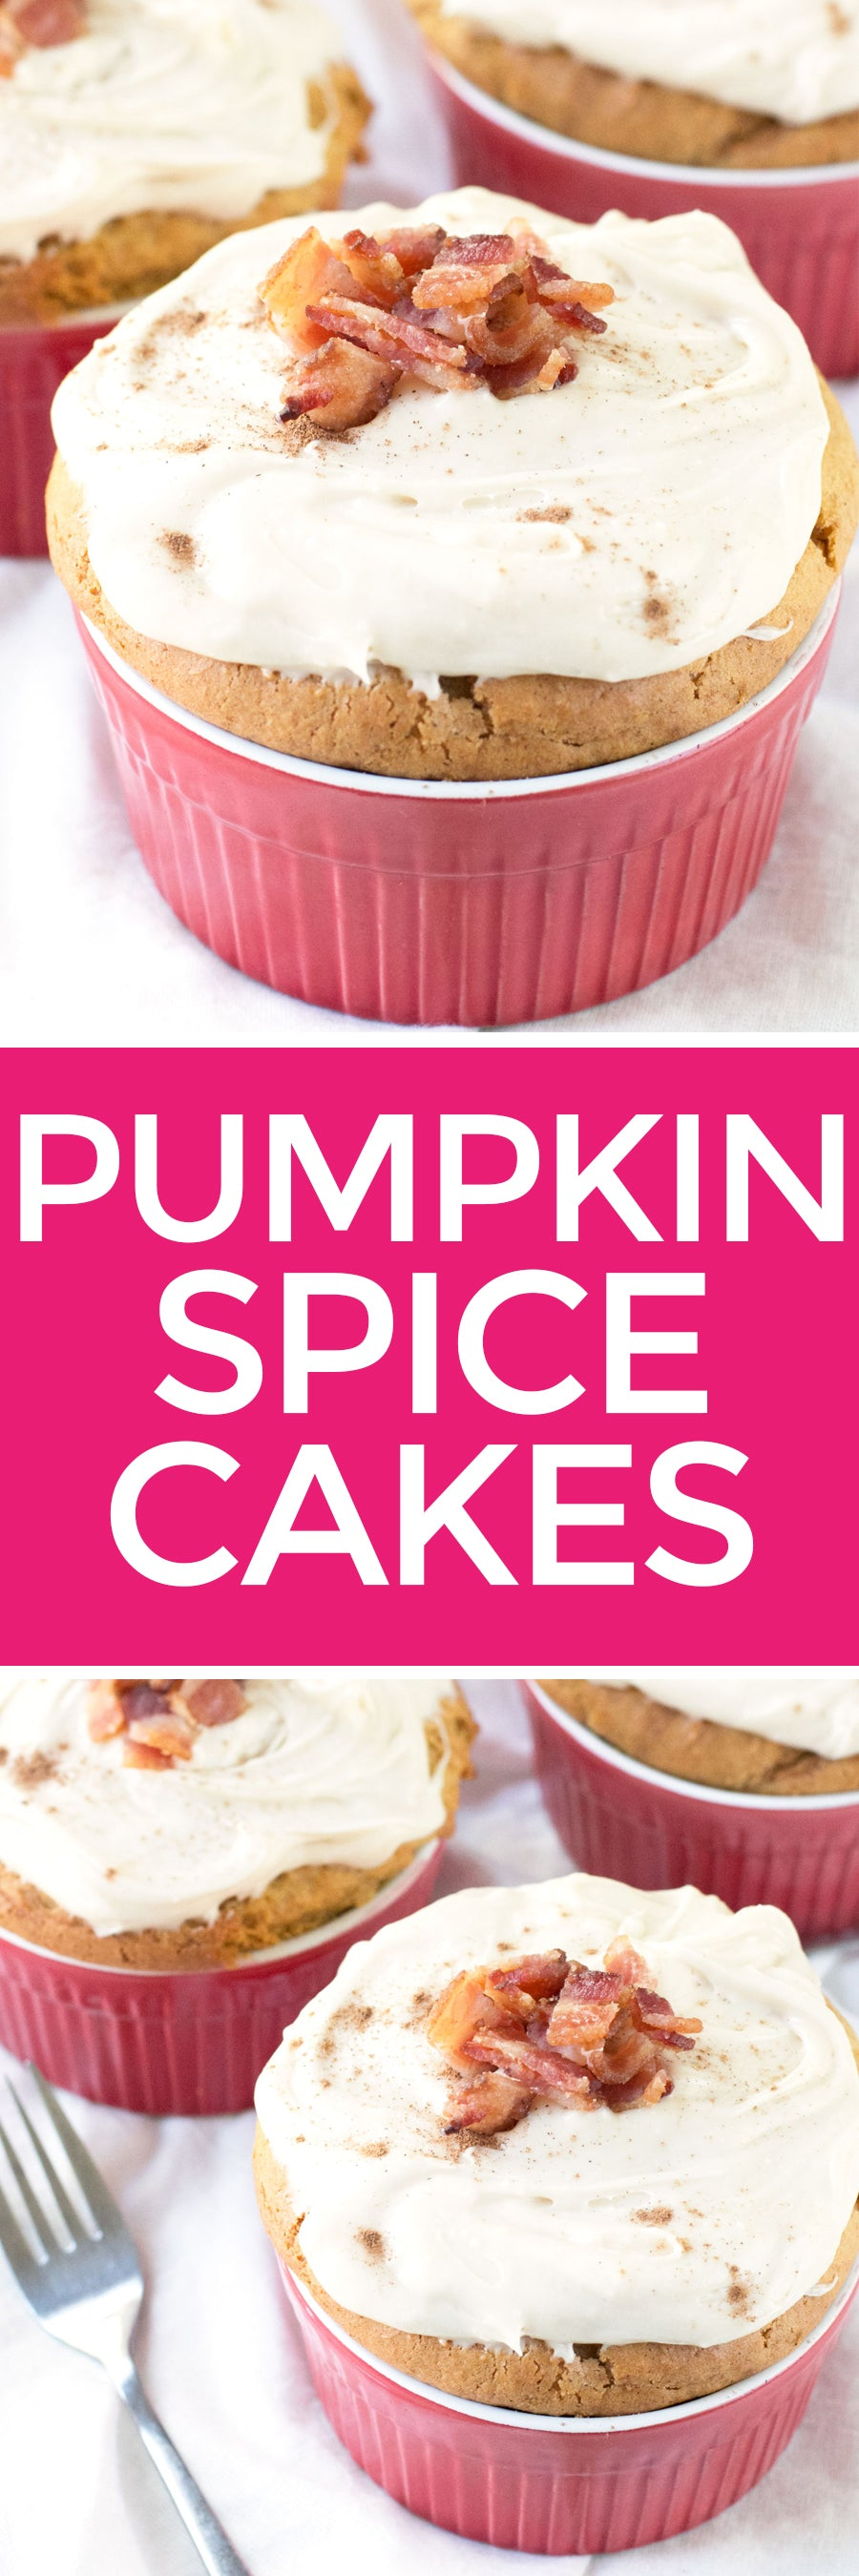 Individual Pumpkin Spice Cakes with Candied Bacon | pigofthemonth.com #dessert #pumpkinspice